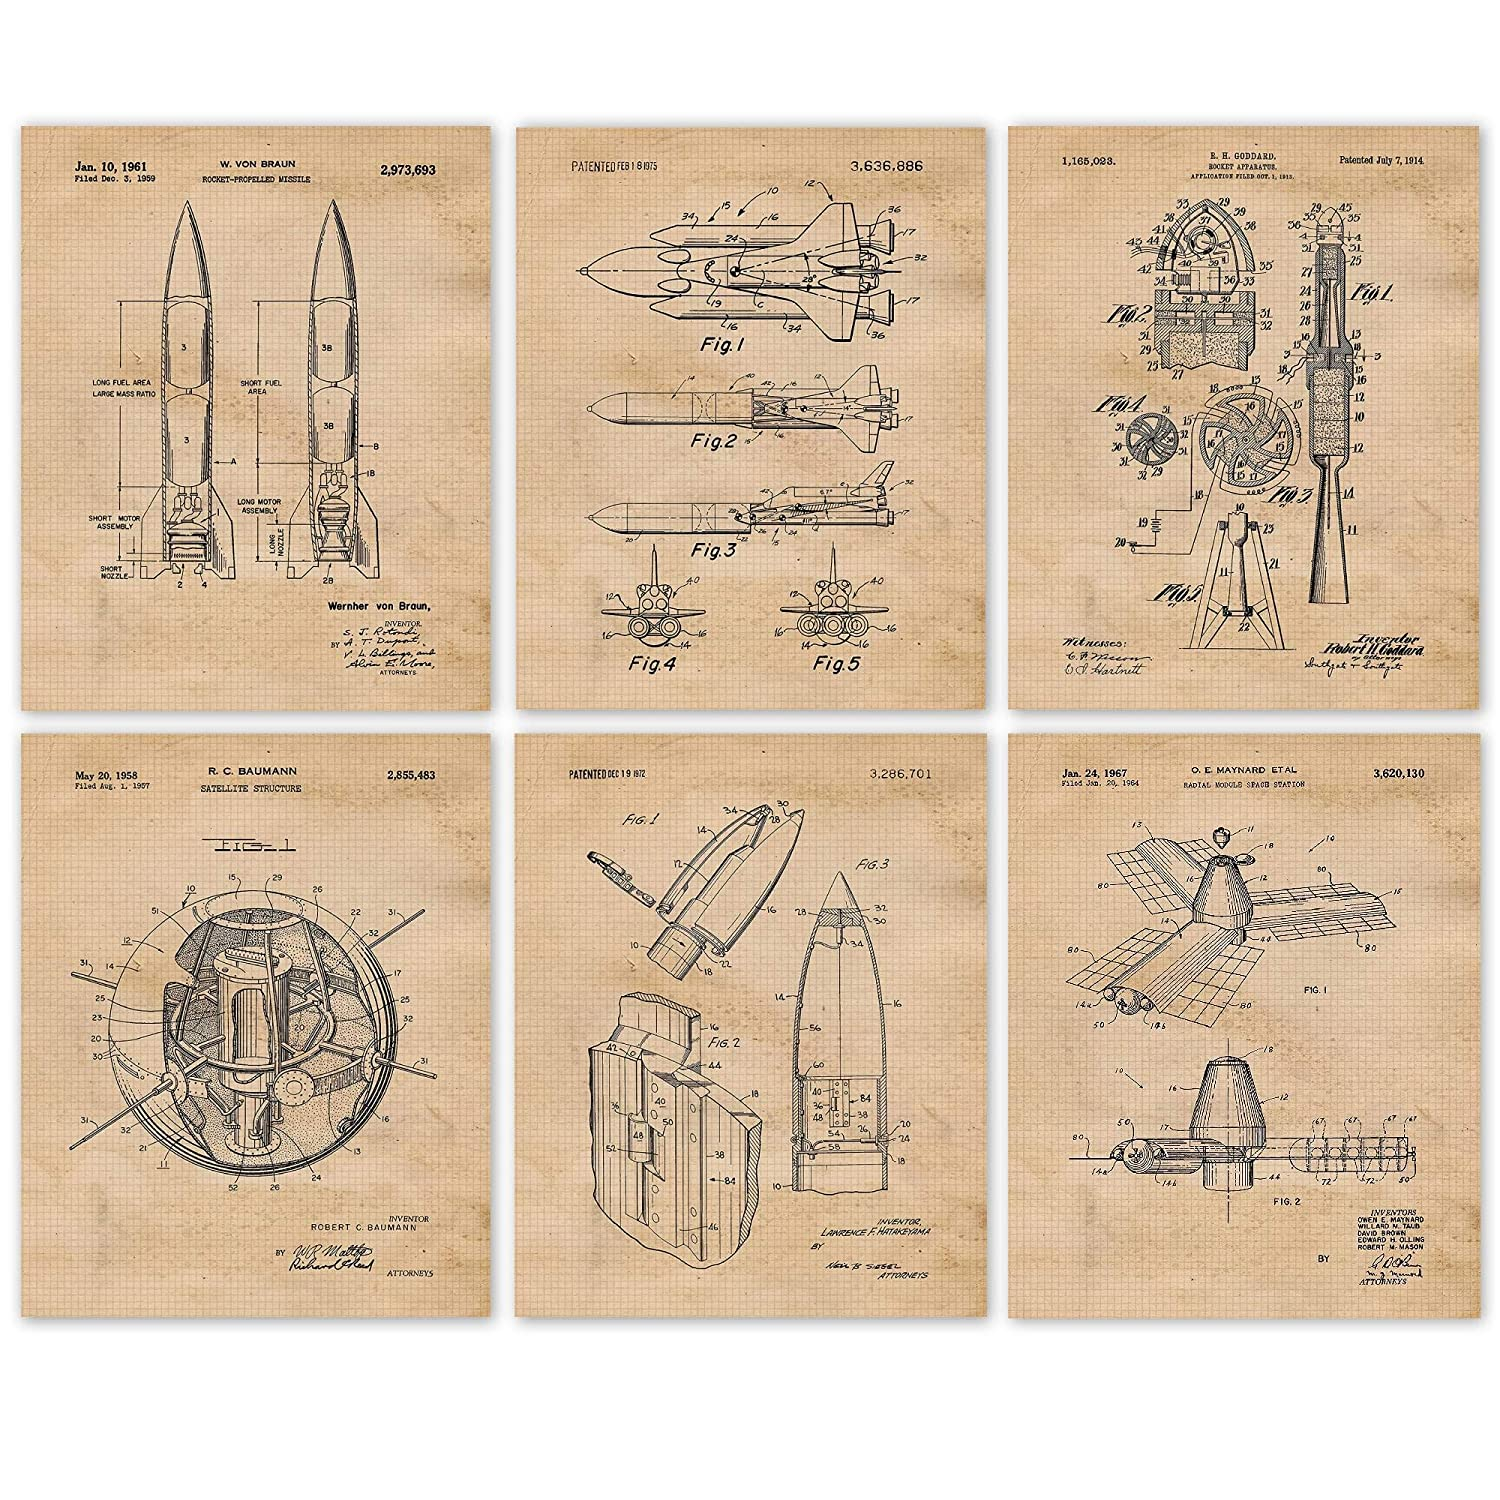 Vintage NASA Space Exploration Patent Poster Prints, Set of 6 (8x10) Unframed Photos, Wall Art Decor Gifts Under 20 for Home, Office, Garage, Shop, Man Cave, College Student, Teacher, Aviation Fan